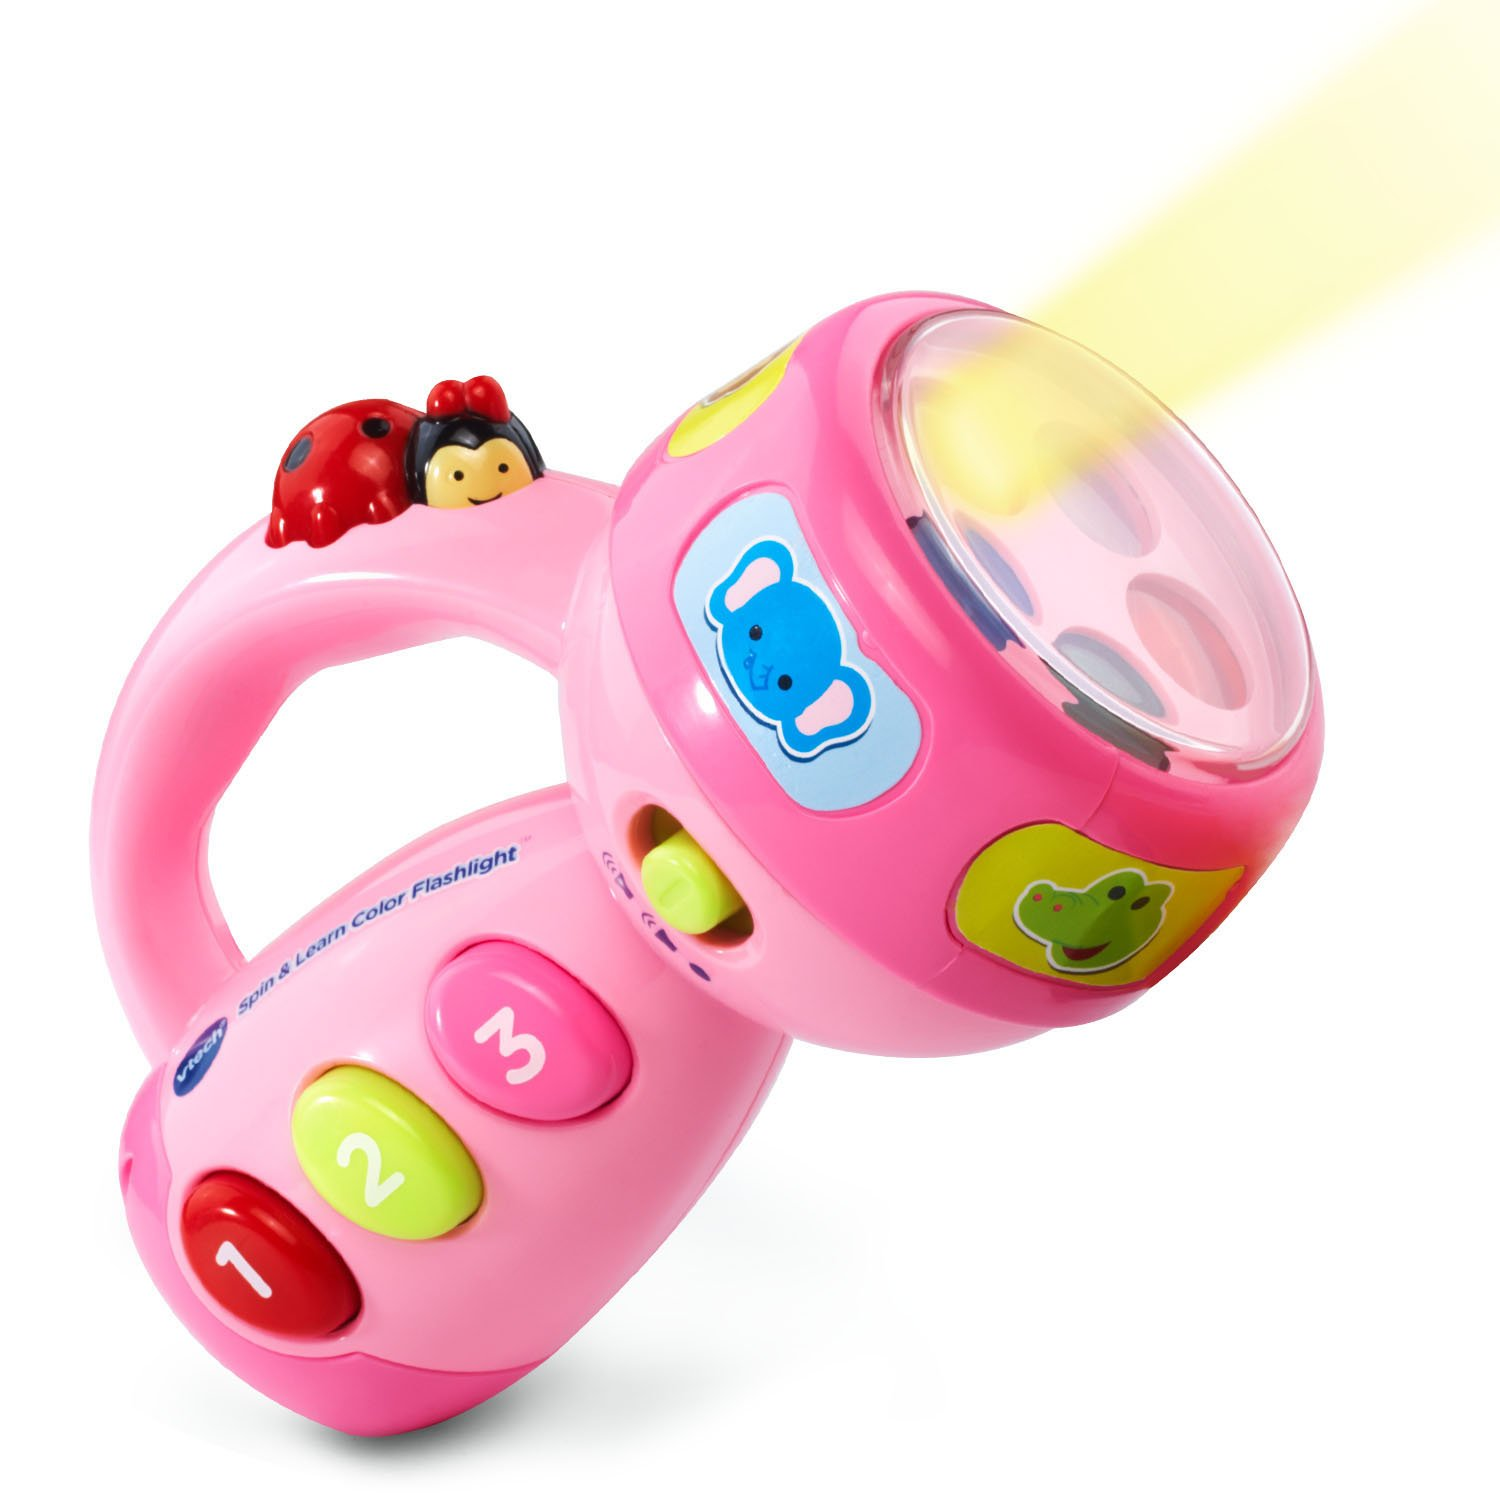 VTech Spin and Learn Color Flashlight - KidzToyZone